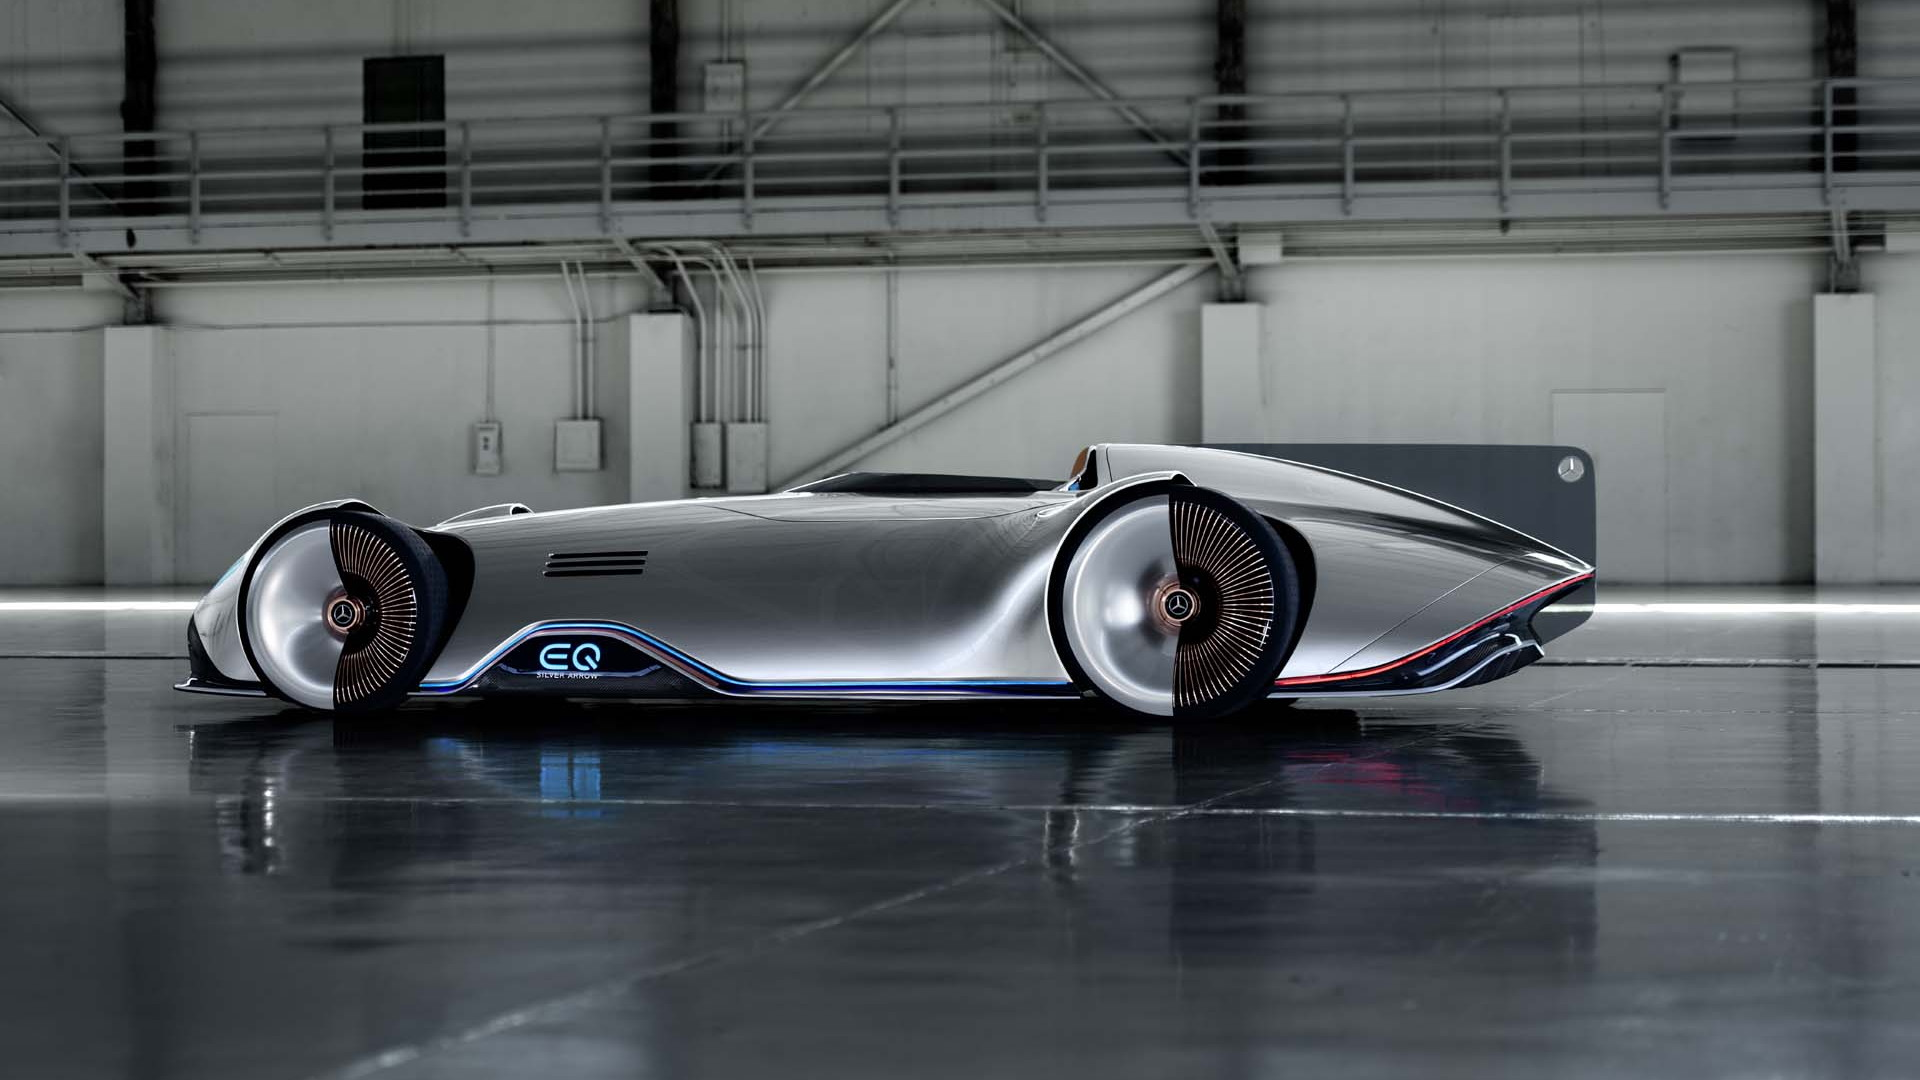 Mercedes' EQ Silver Arrow concept